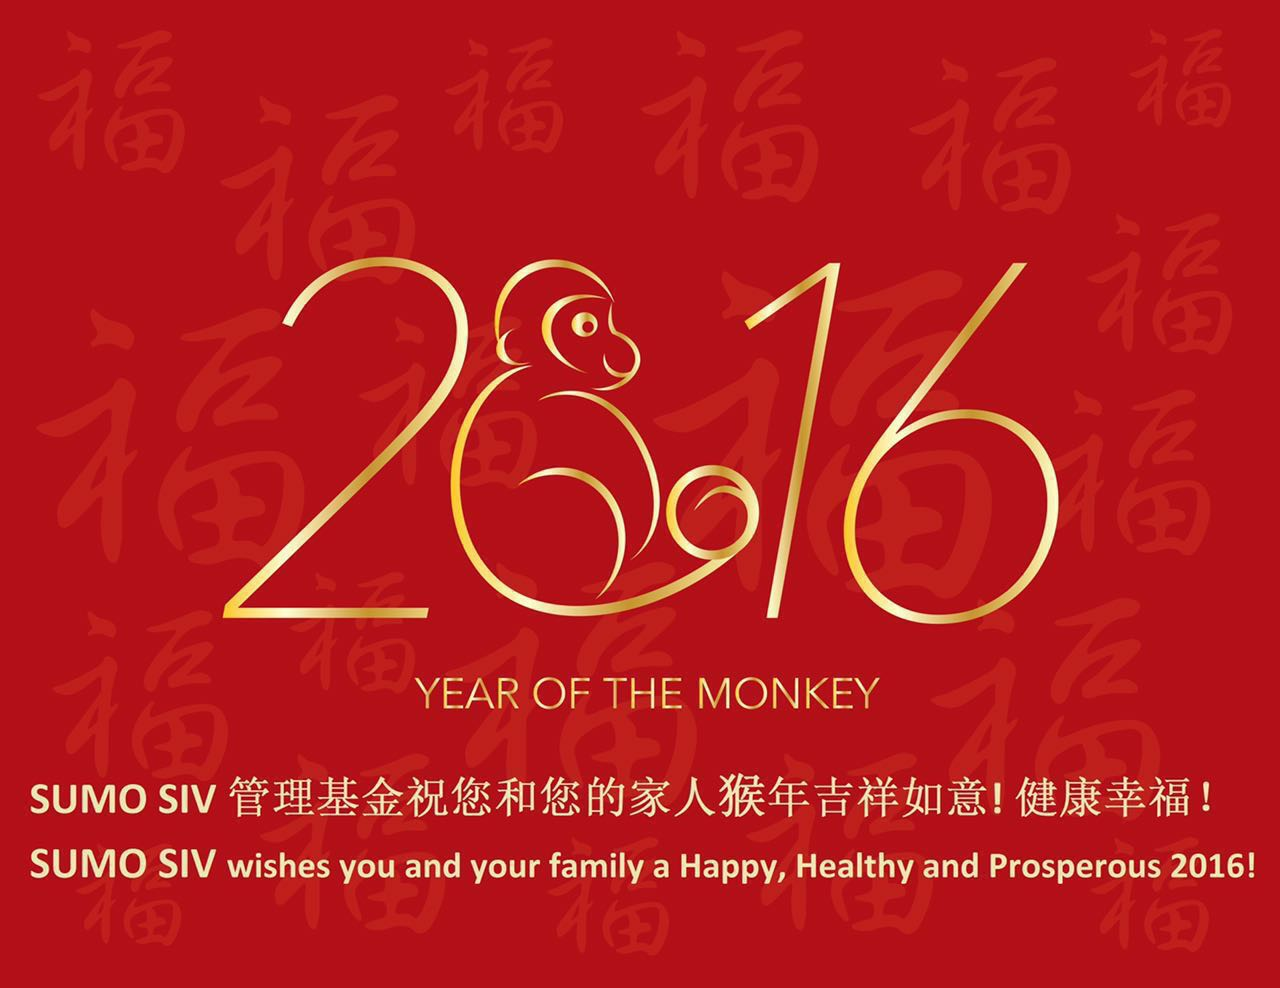 SUMO SIV Lunar New Year 2016